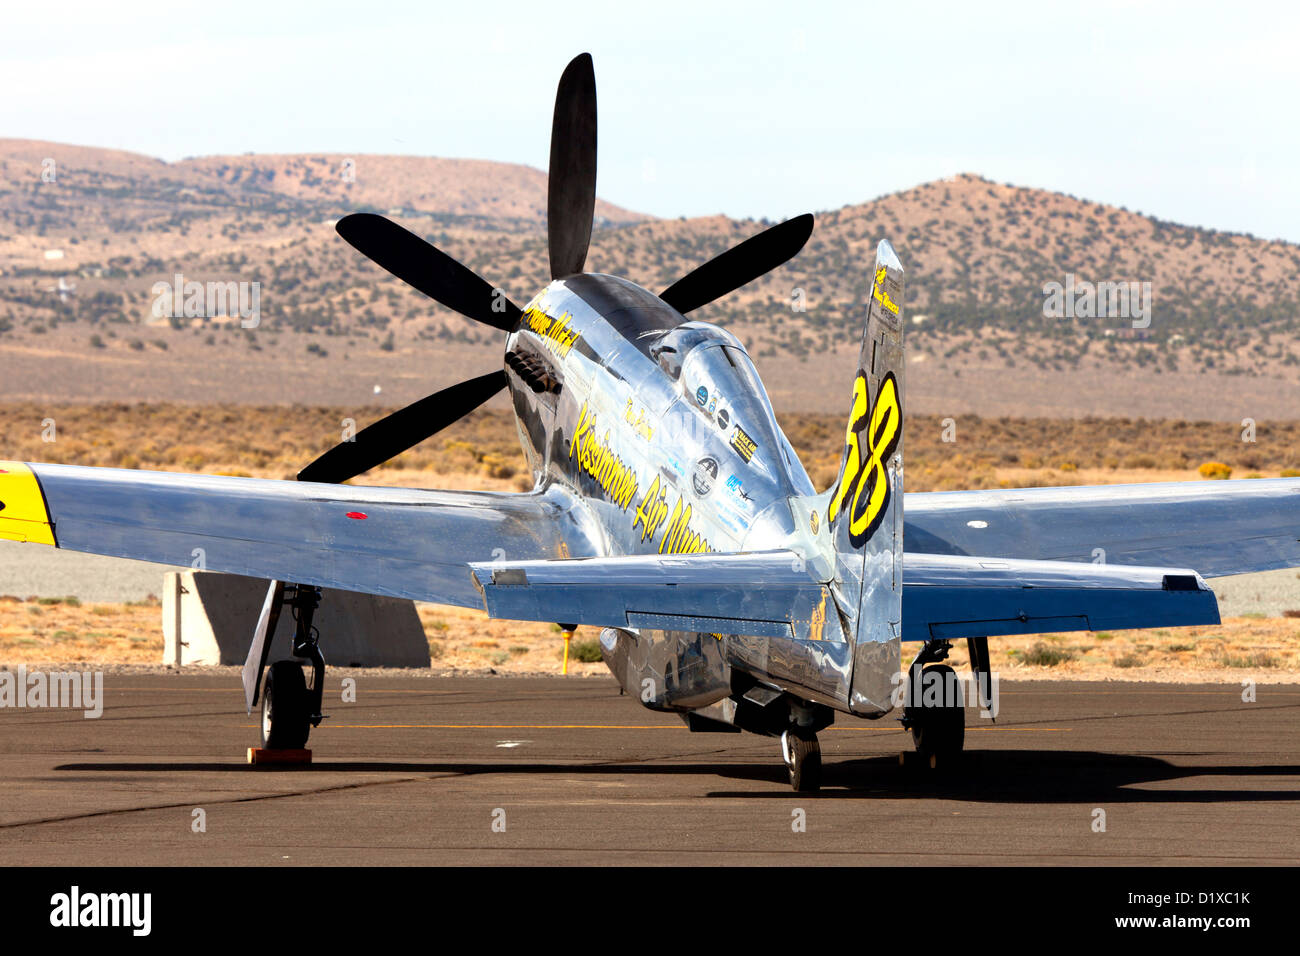 P-51 Mustang Unlimited Air Racer Precious Metal on the ramp at the 2012 Reno National Championship Air Races - Stock Image